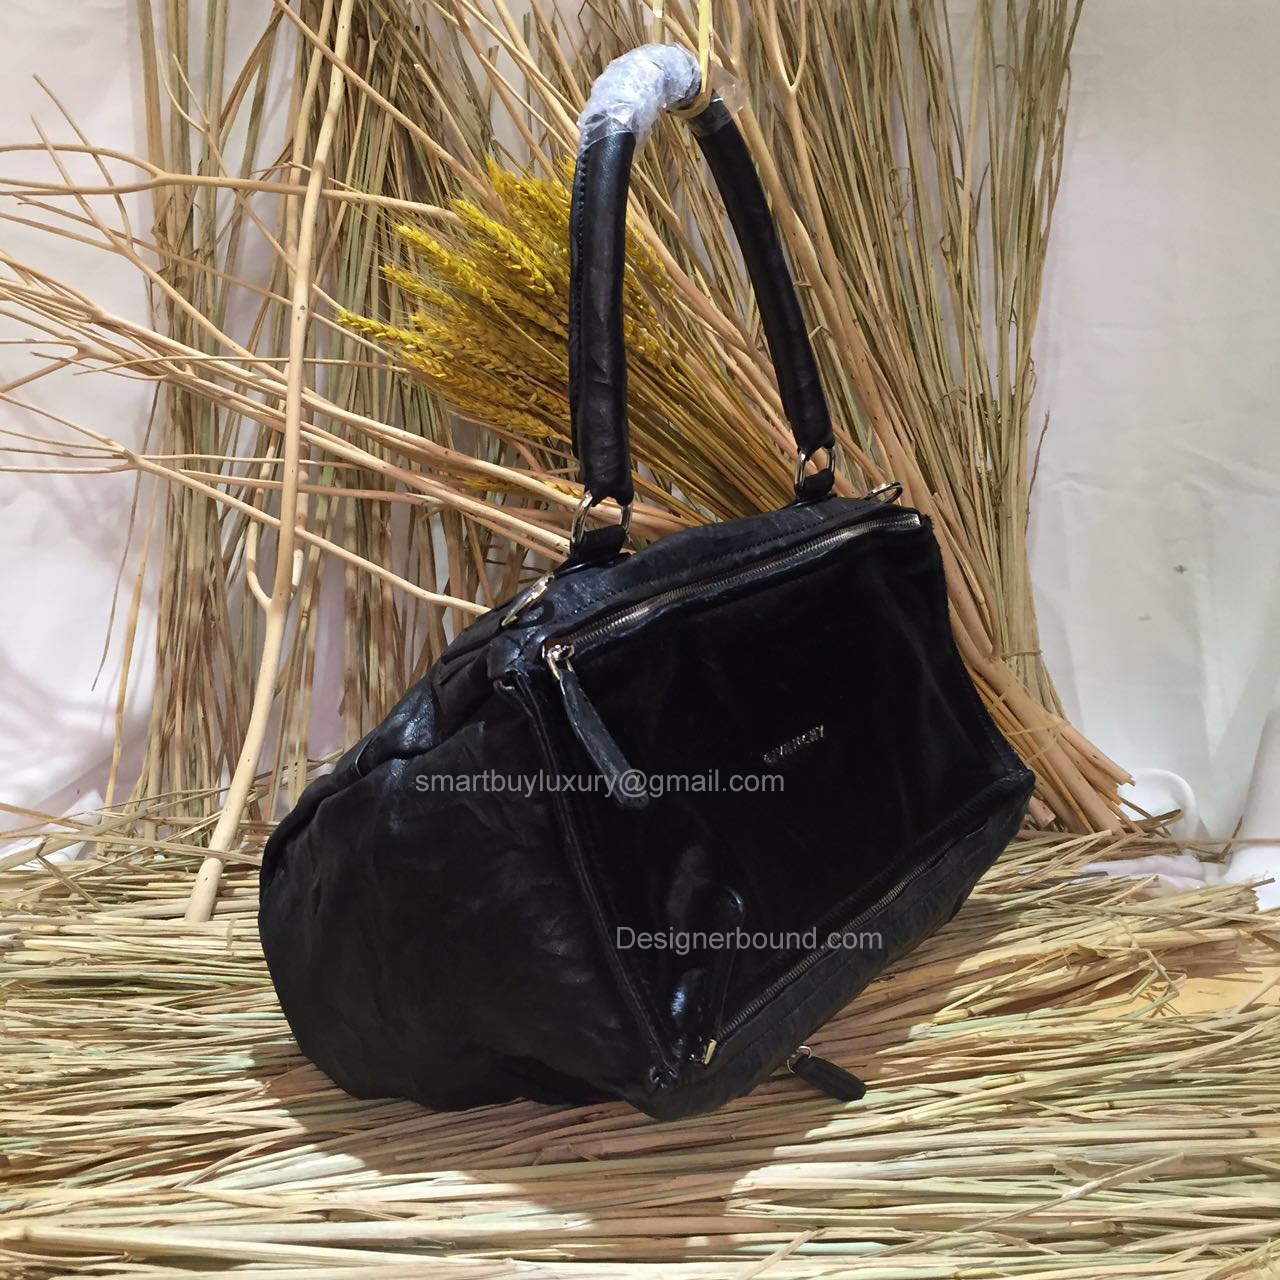 88c5c7ded797 GIVENCHY LARGE PANDORA BLACK BAG WITH PONY HAIR 285165  297.00